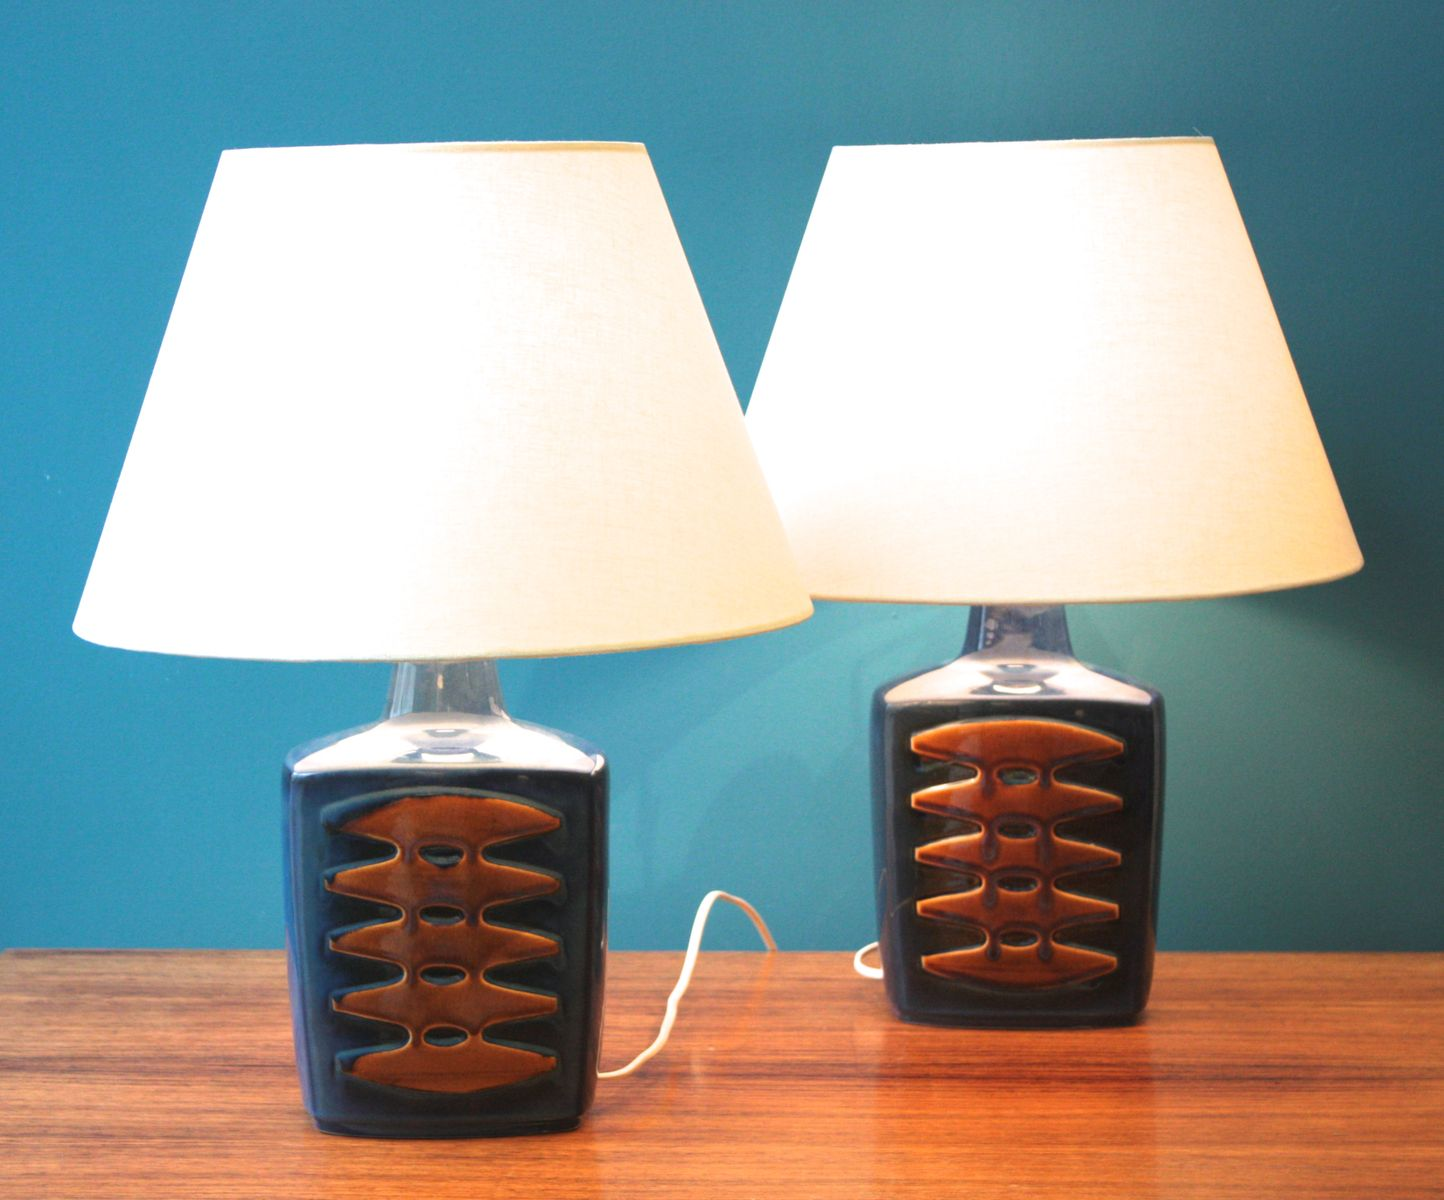 Large blue danish table lamps by einar johansen for soholm set of large blue danish table lamps by einar johansen for soholm set of 2 geotapseo Images